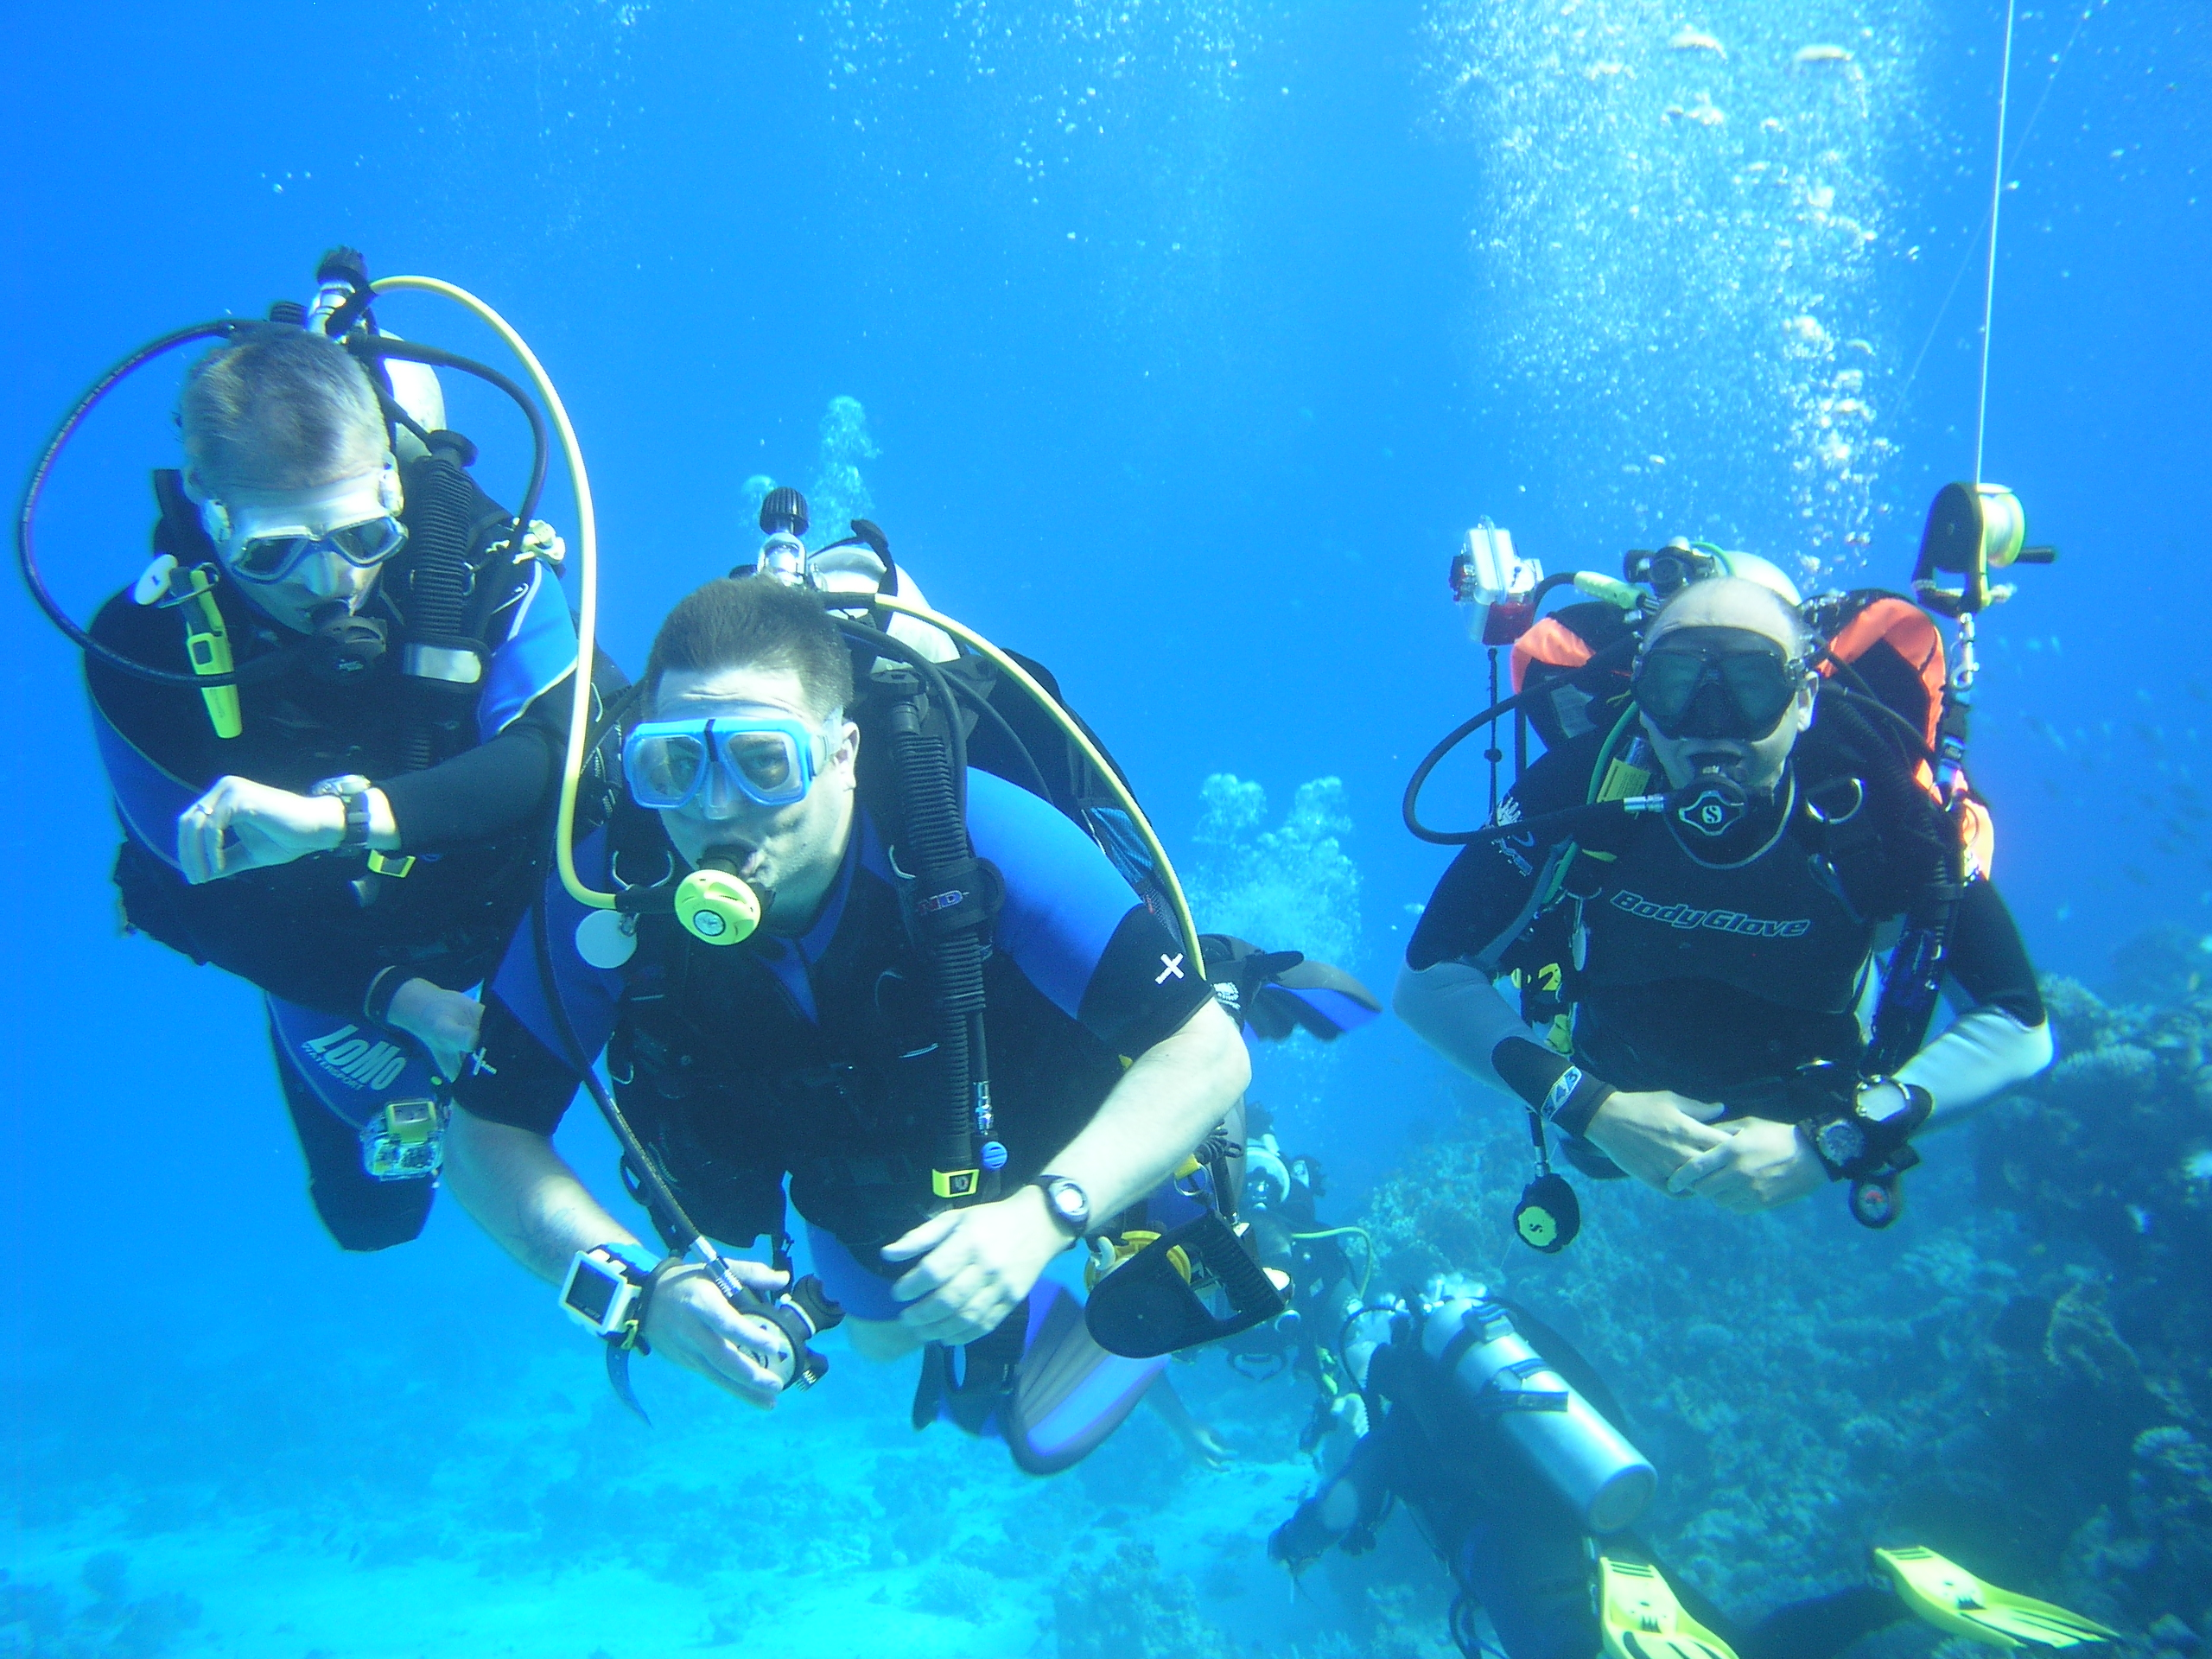 Underwater photo of three divers